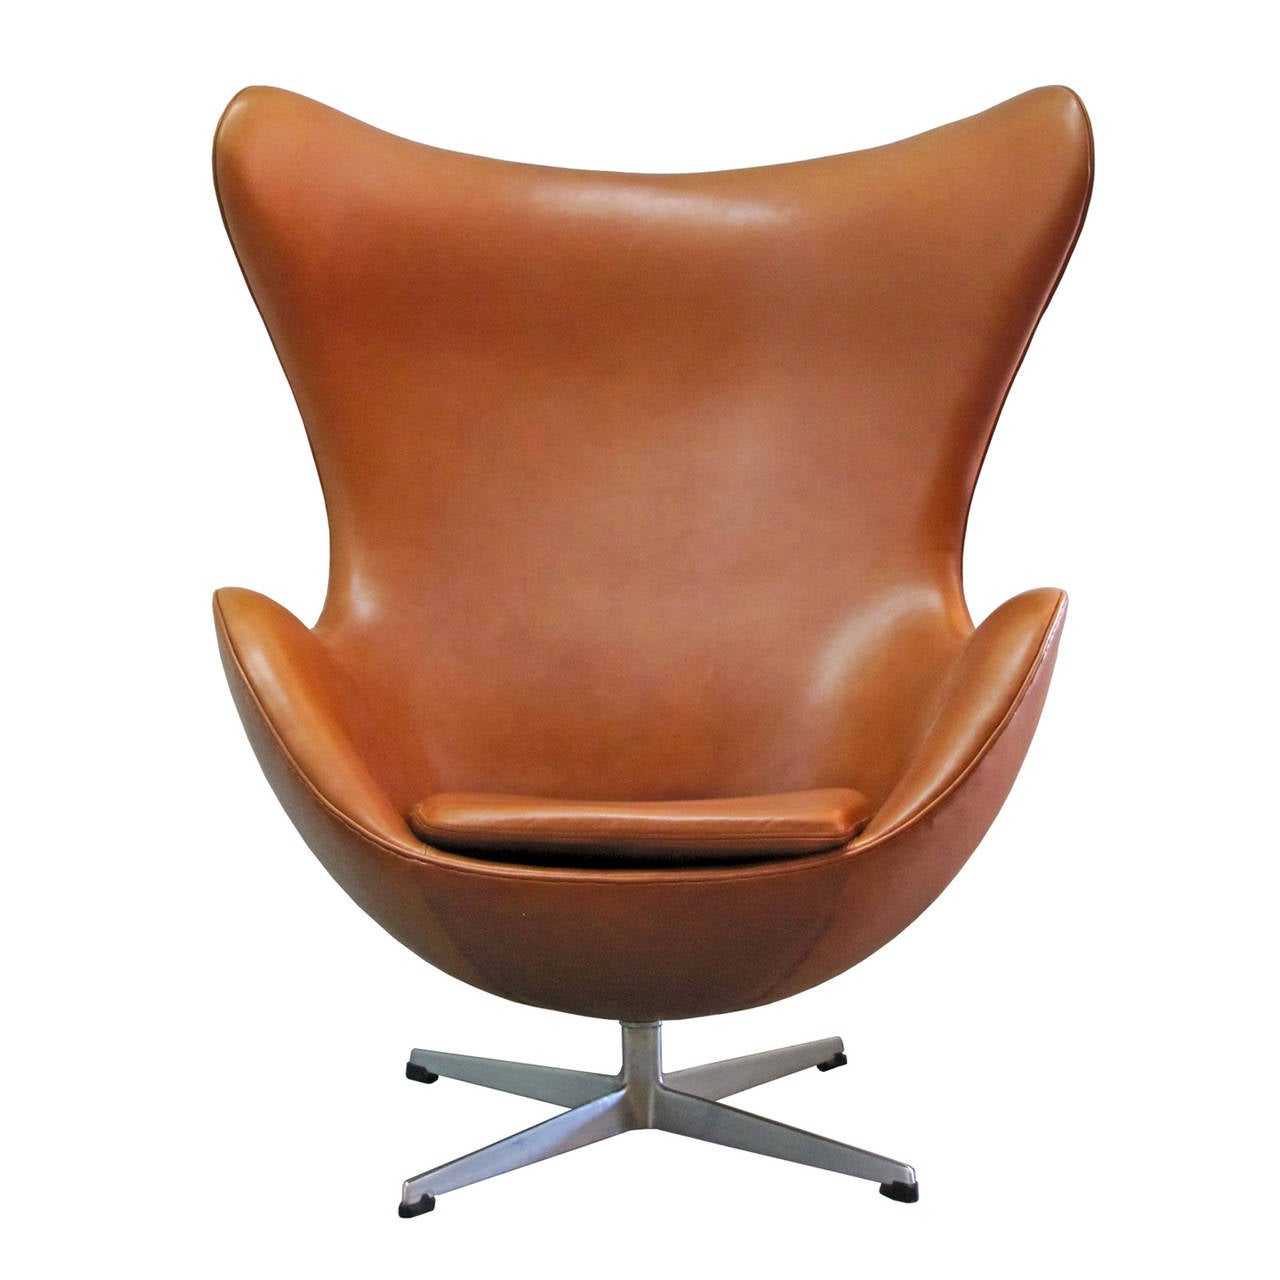 Arne jacobsen egg chair at 1stdibs for Furniture chairs